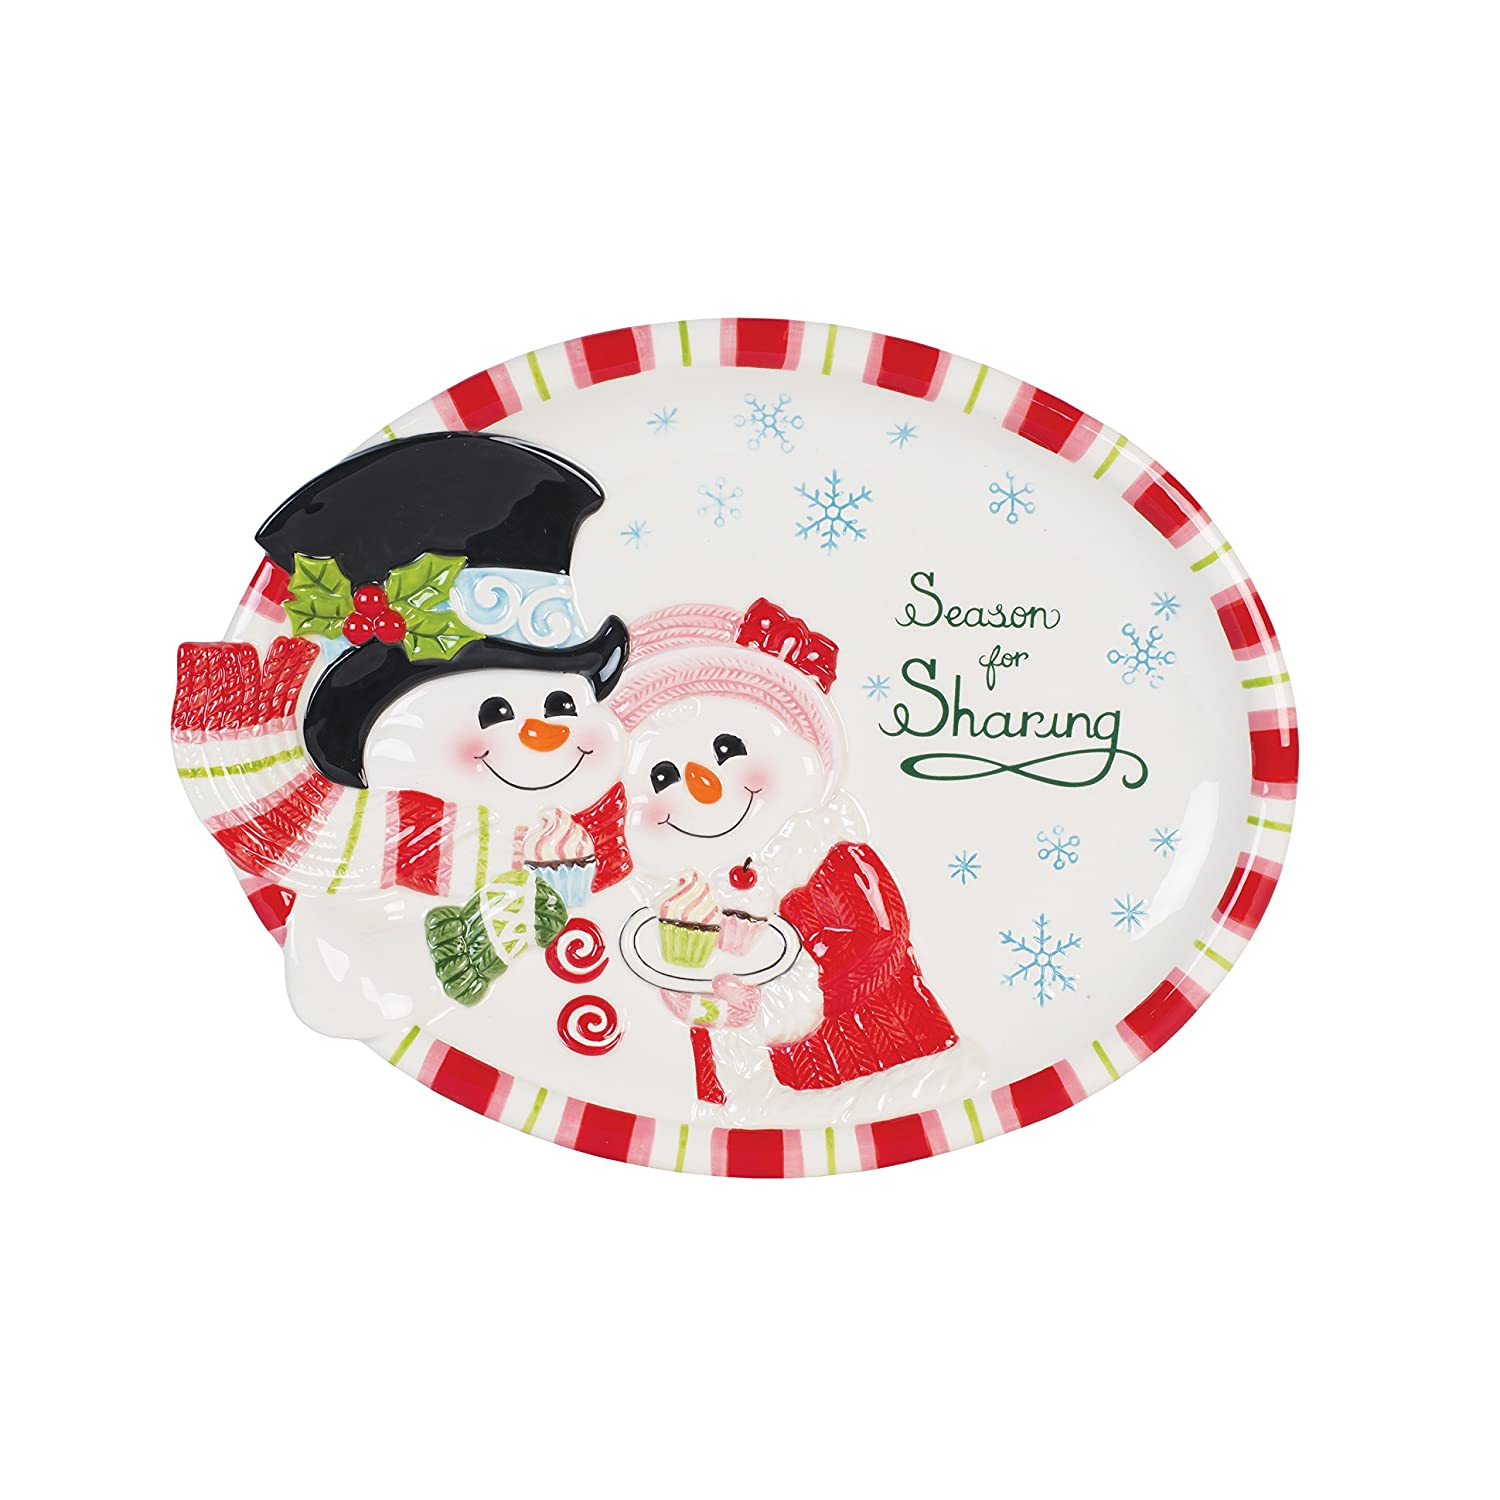 Snowm Couple Flurry Folk Cookie Platter 10.5 x 13.8